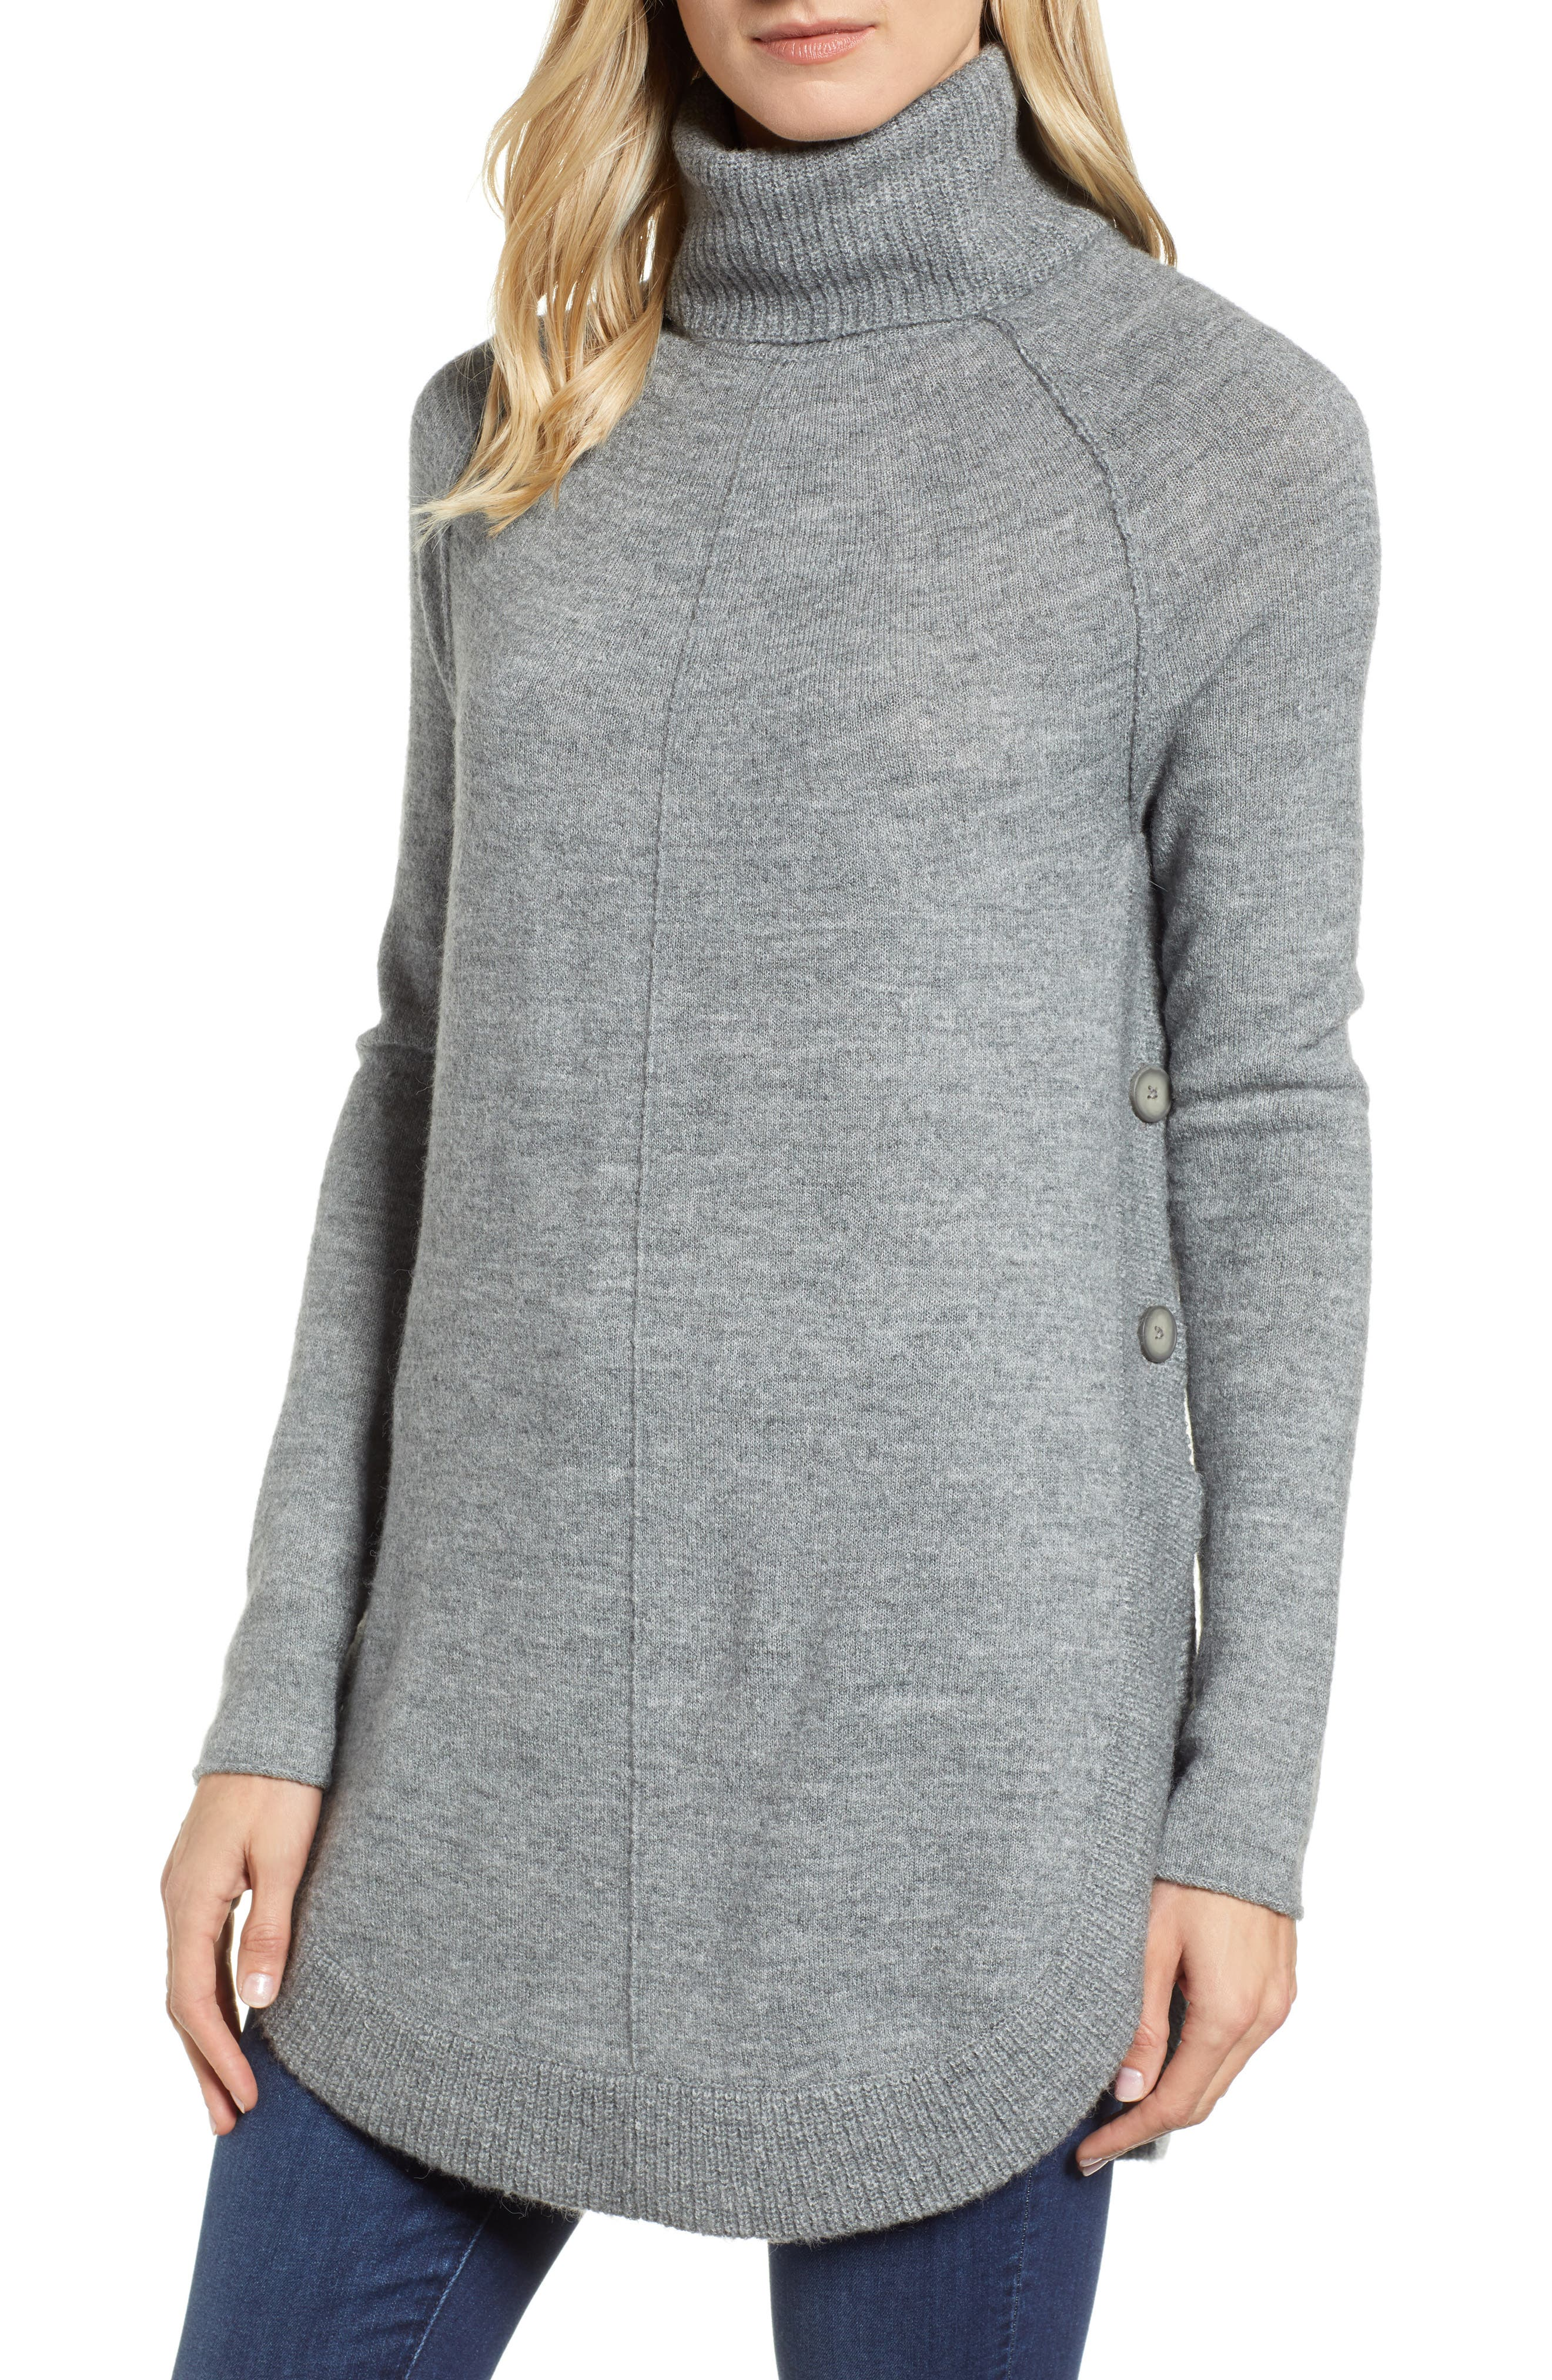 reputable site 8172f aebb4 Women s Tunics New Arrivals  Clothing, Shoes   Beauty   Nordstrom